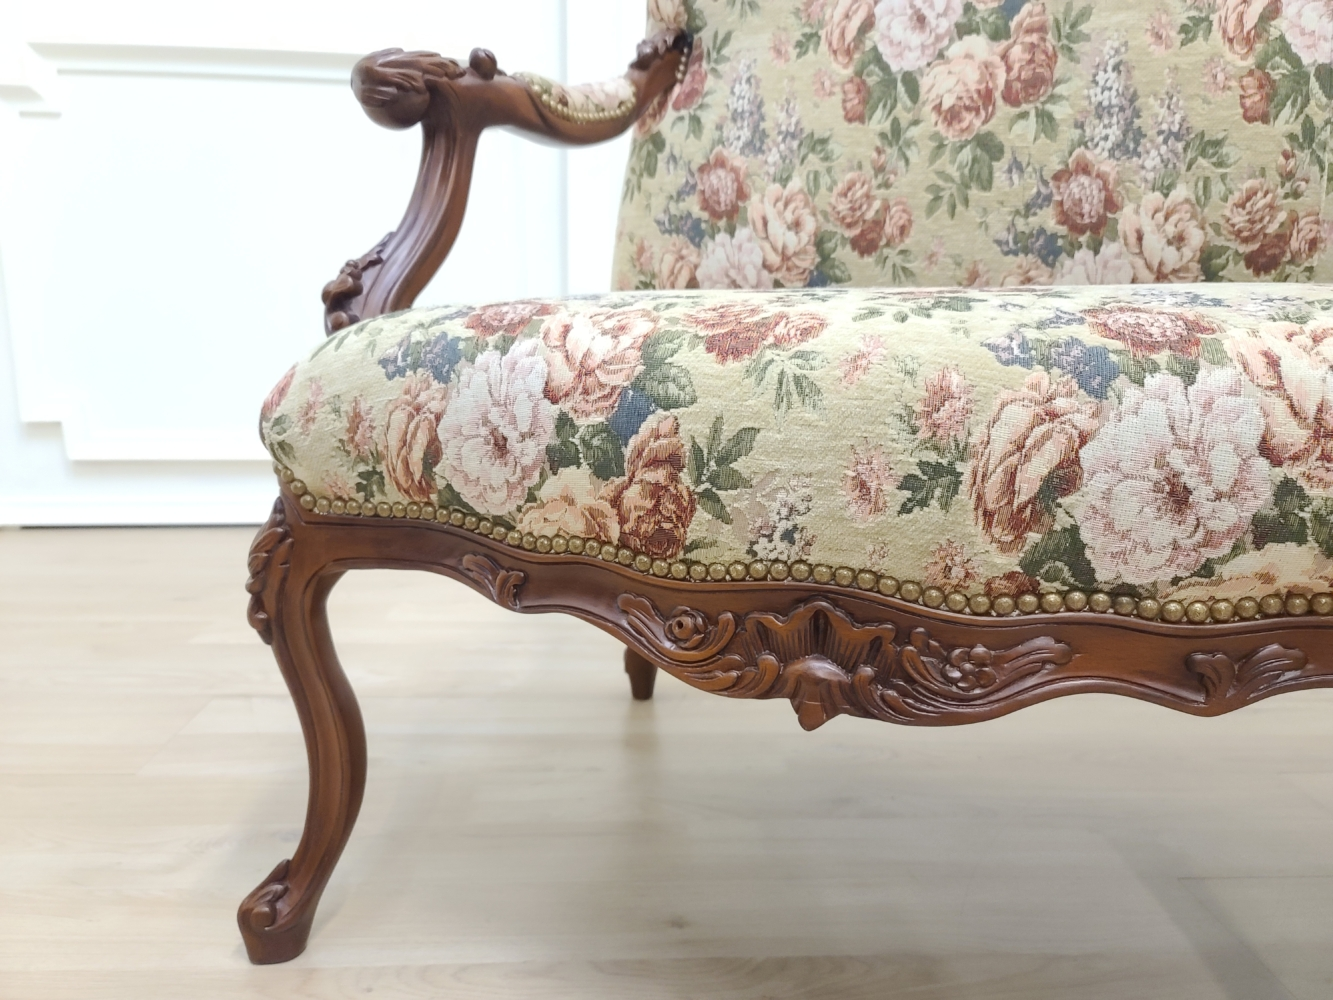 17th century French Style/ Hand carved Wooden Frame/ Jacquard floral fabric /Living Room Set